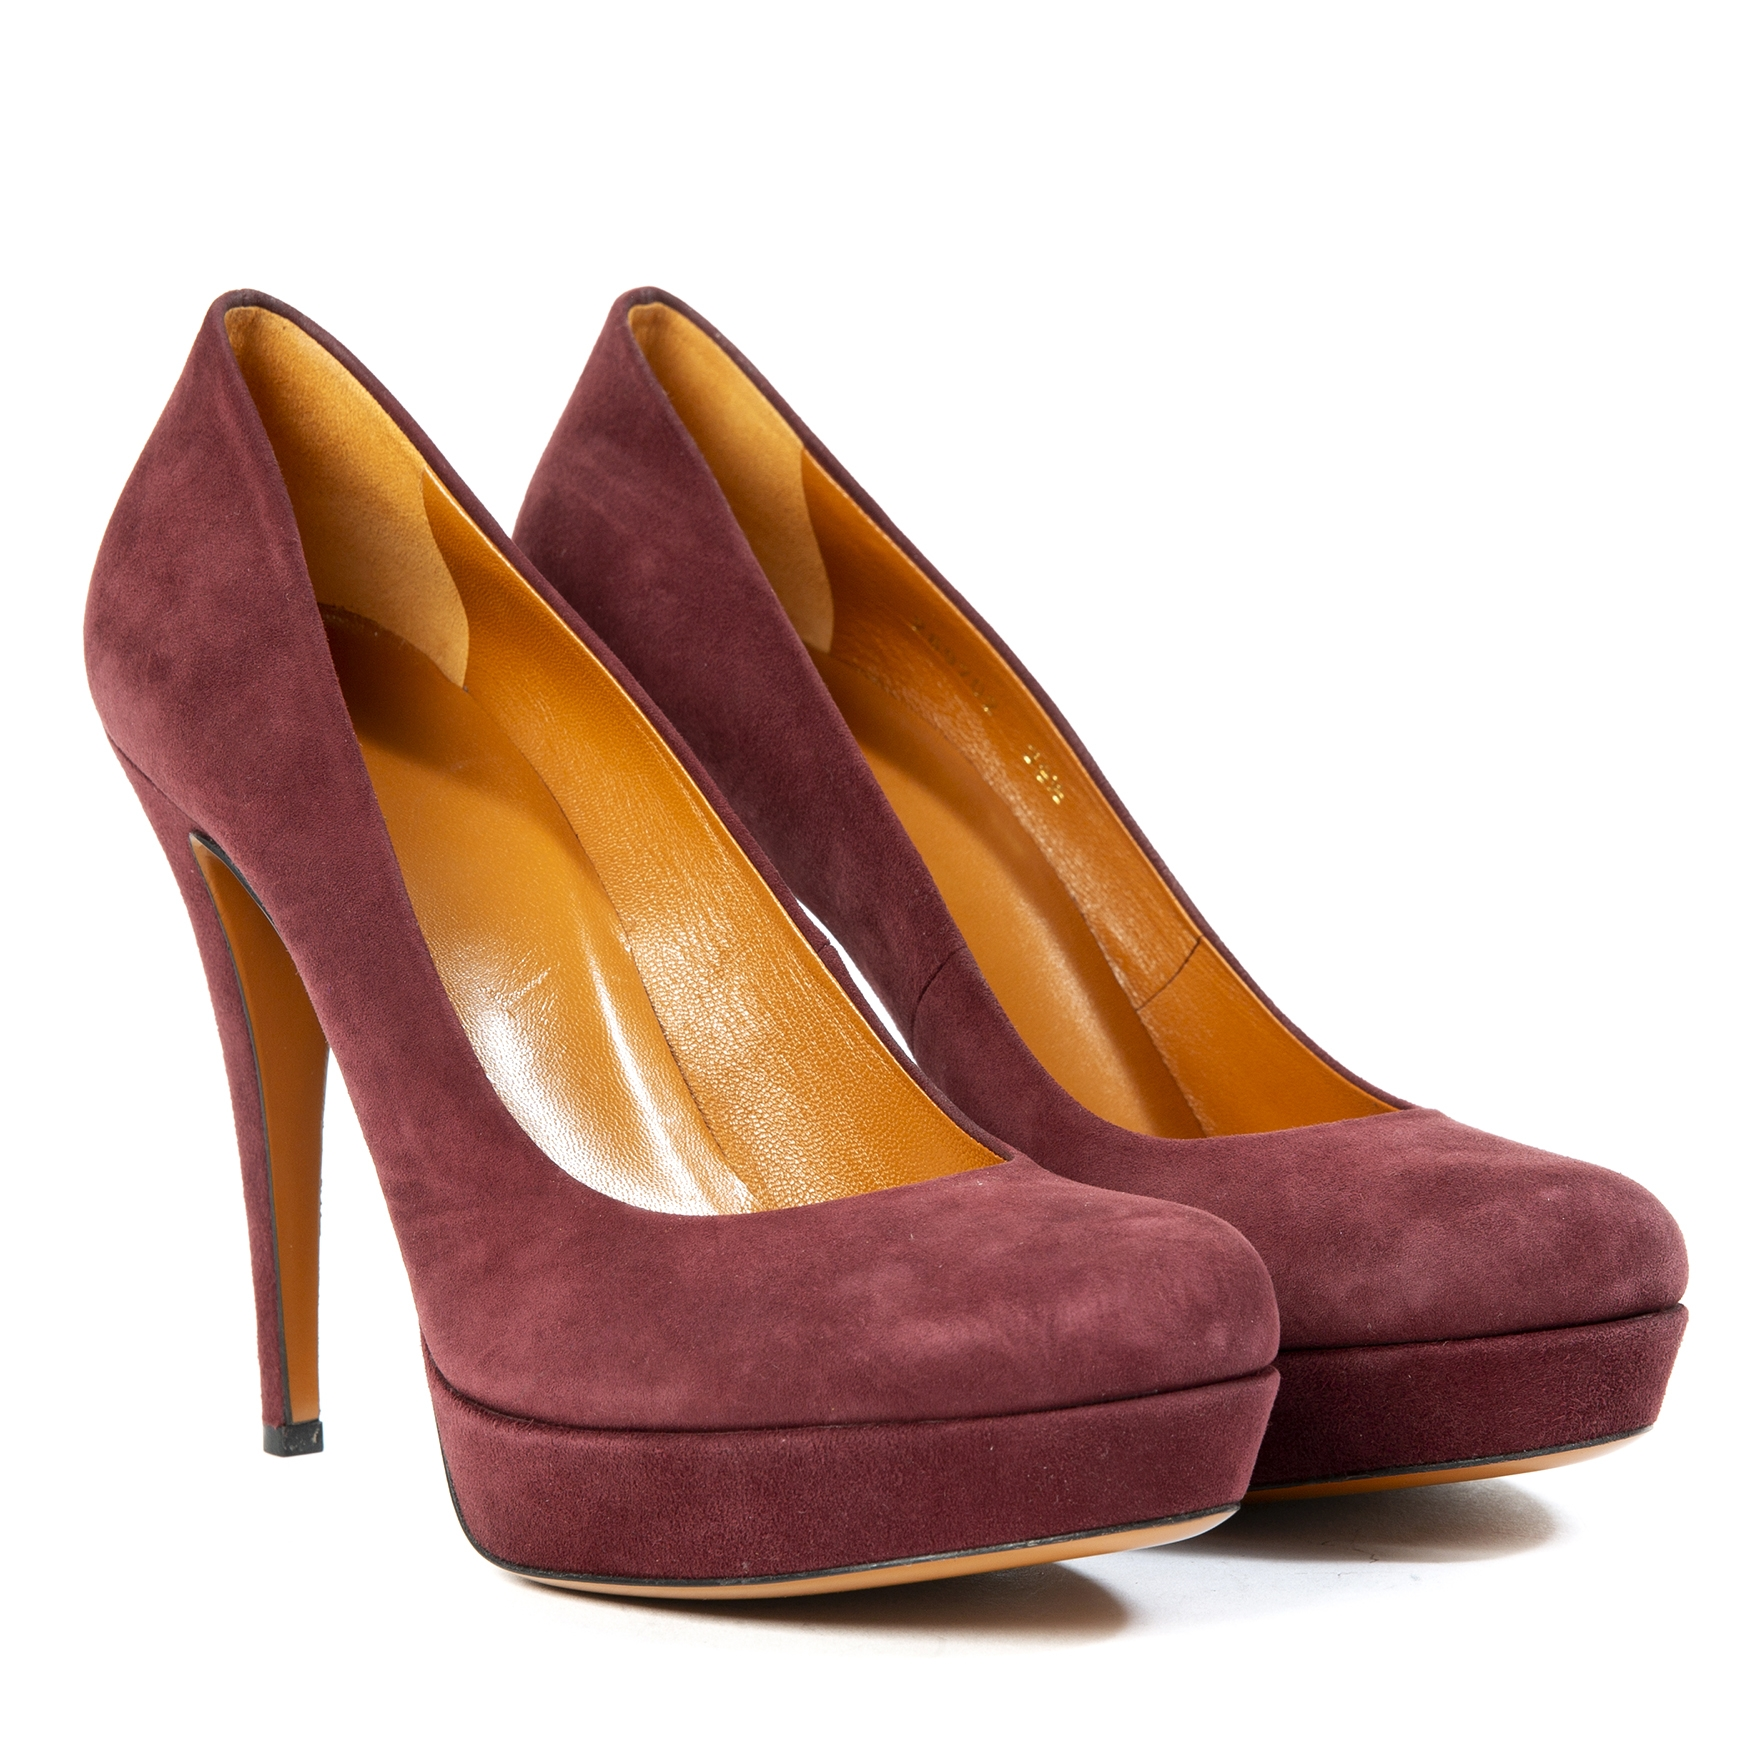 gucci bordeaux suede pumps now for sale at labellov vintage fashion webshop belgium